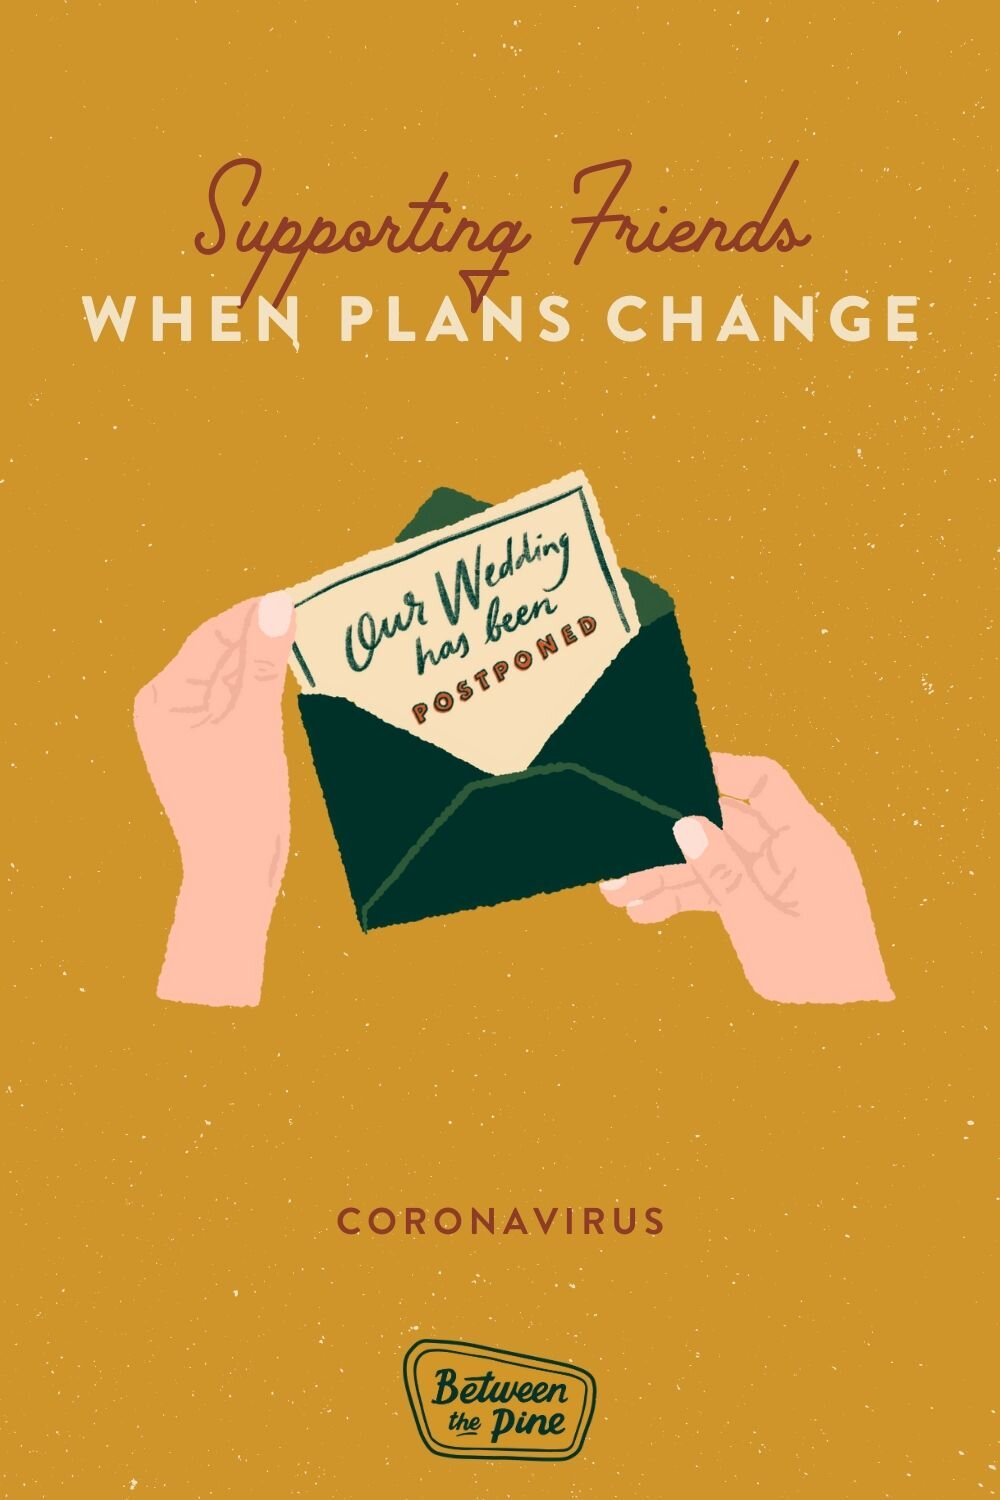 How To Get Married During Coronavirus Creative Ideas Between The Pine